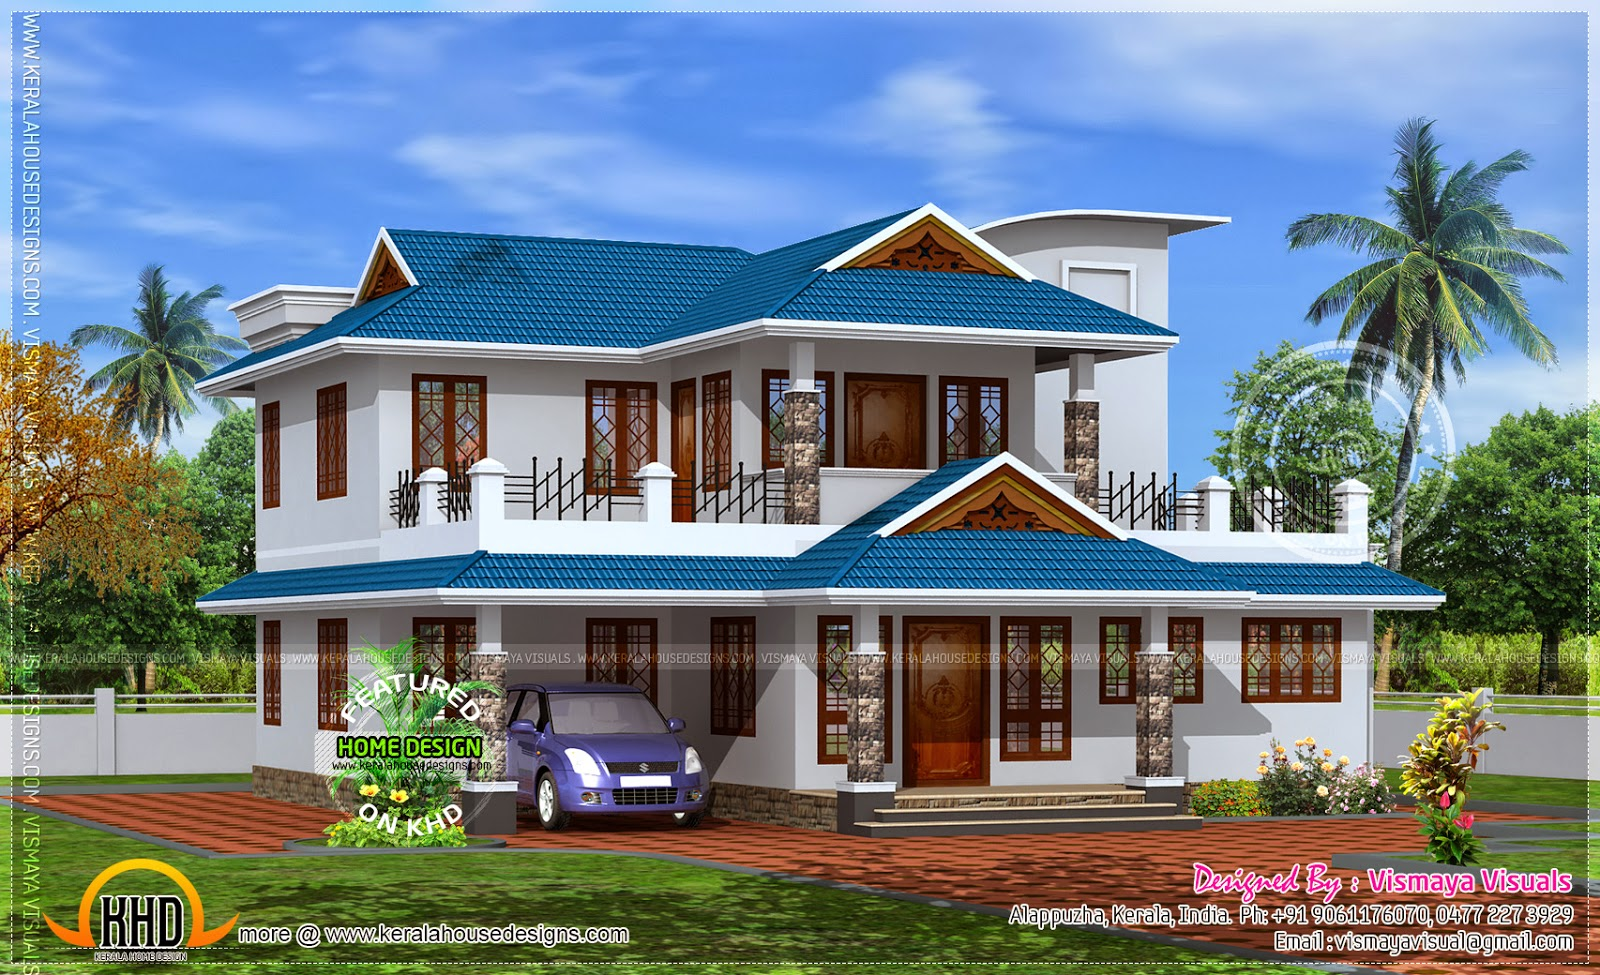 Homes Models And Plans Of 2350 Sq Feet Home Model In Kerala Home Kerala Plans